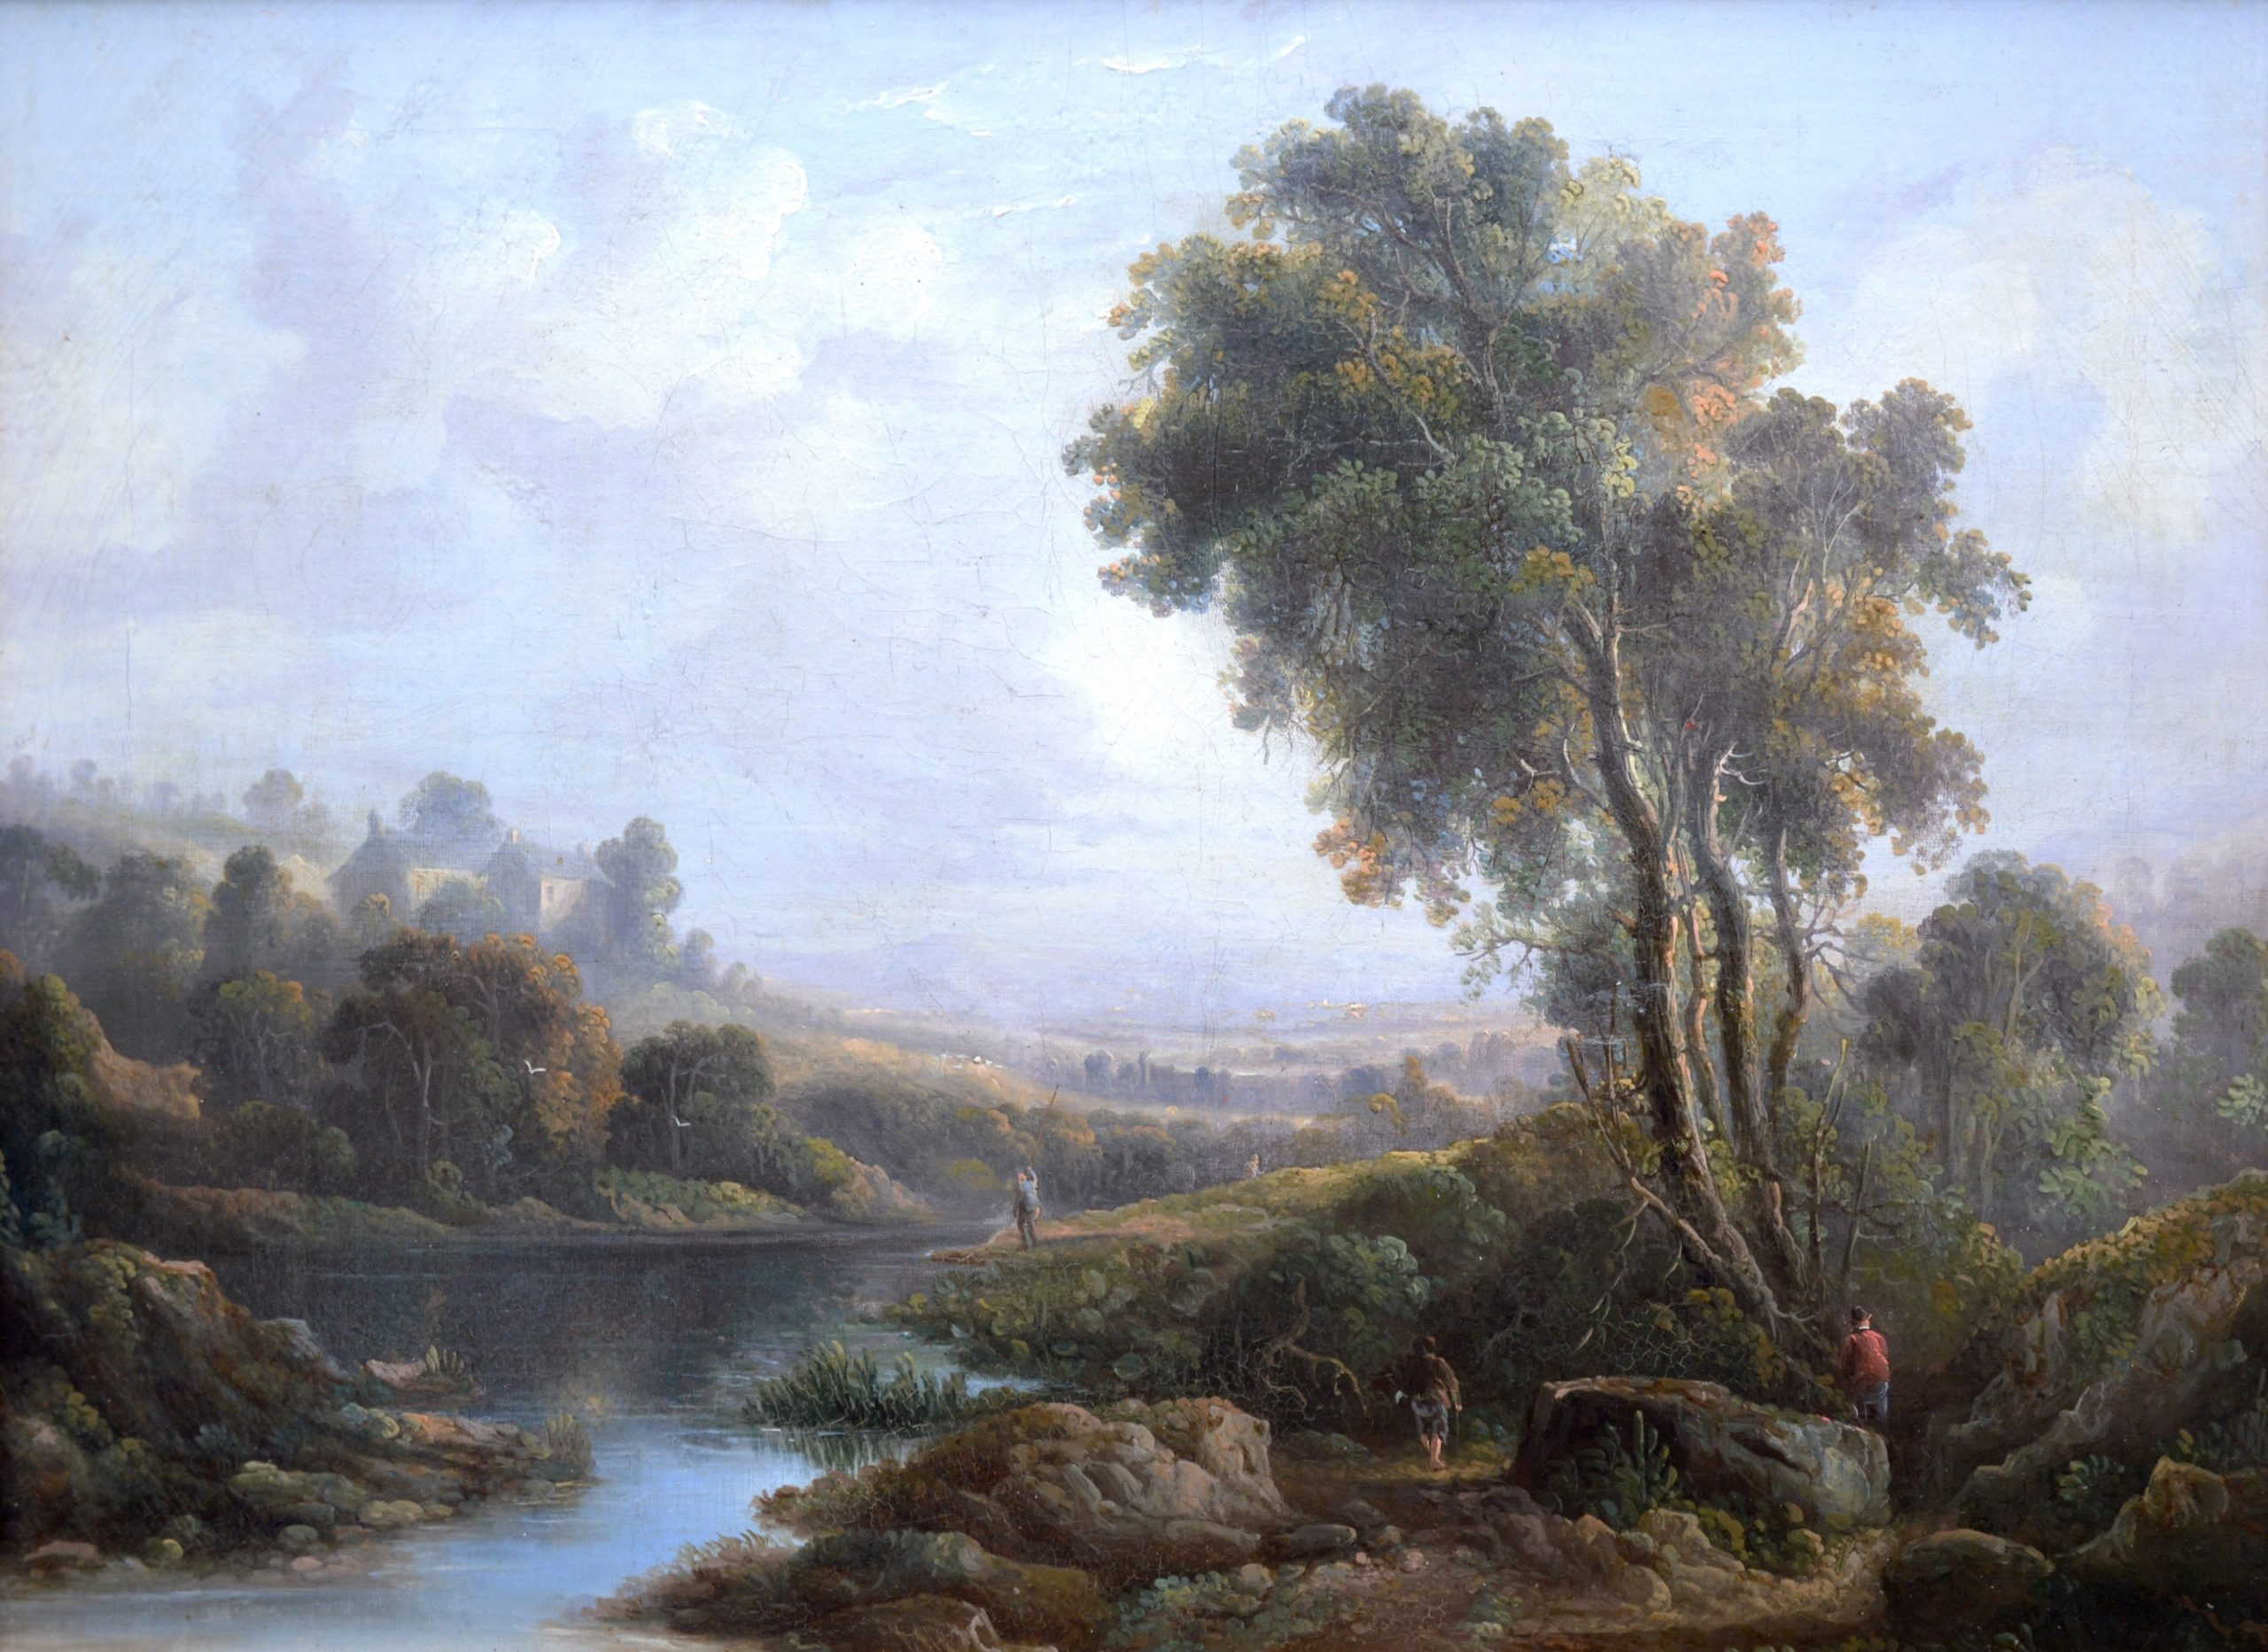 On the River Dee, near Chester - 18th Century English Landscape Oil Painting Image